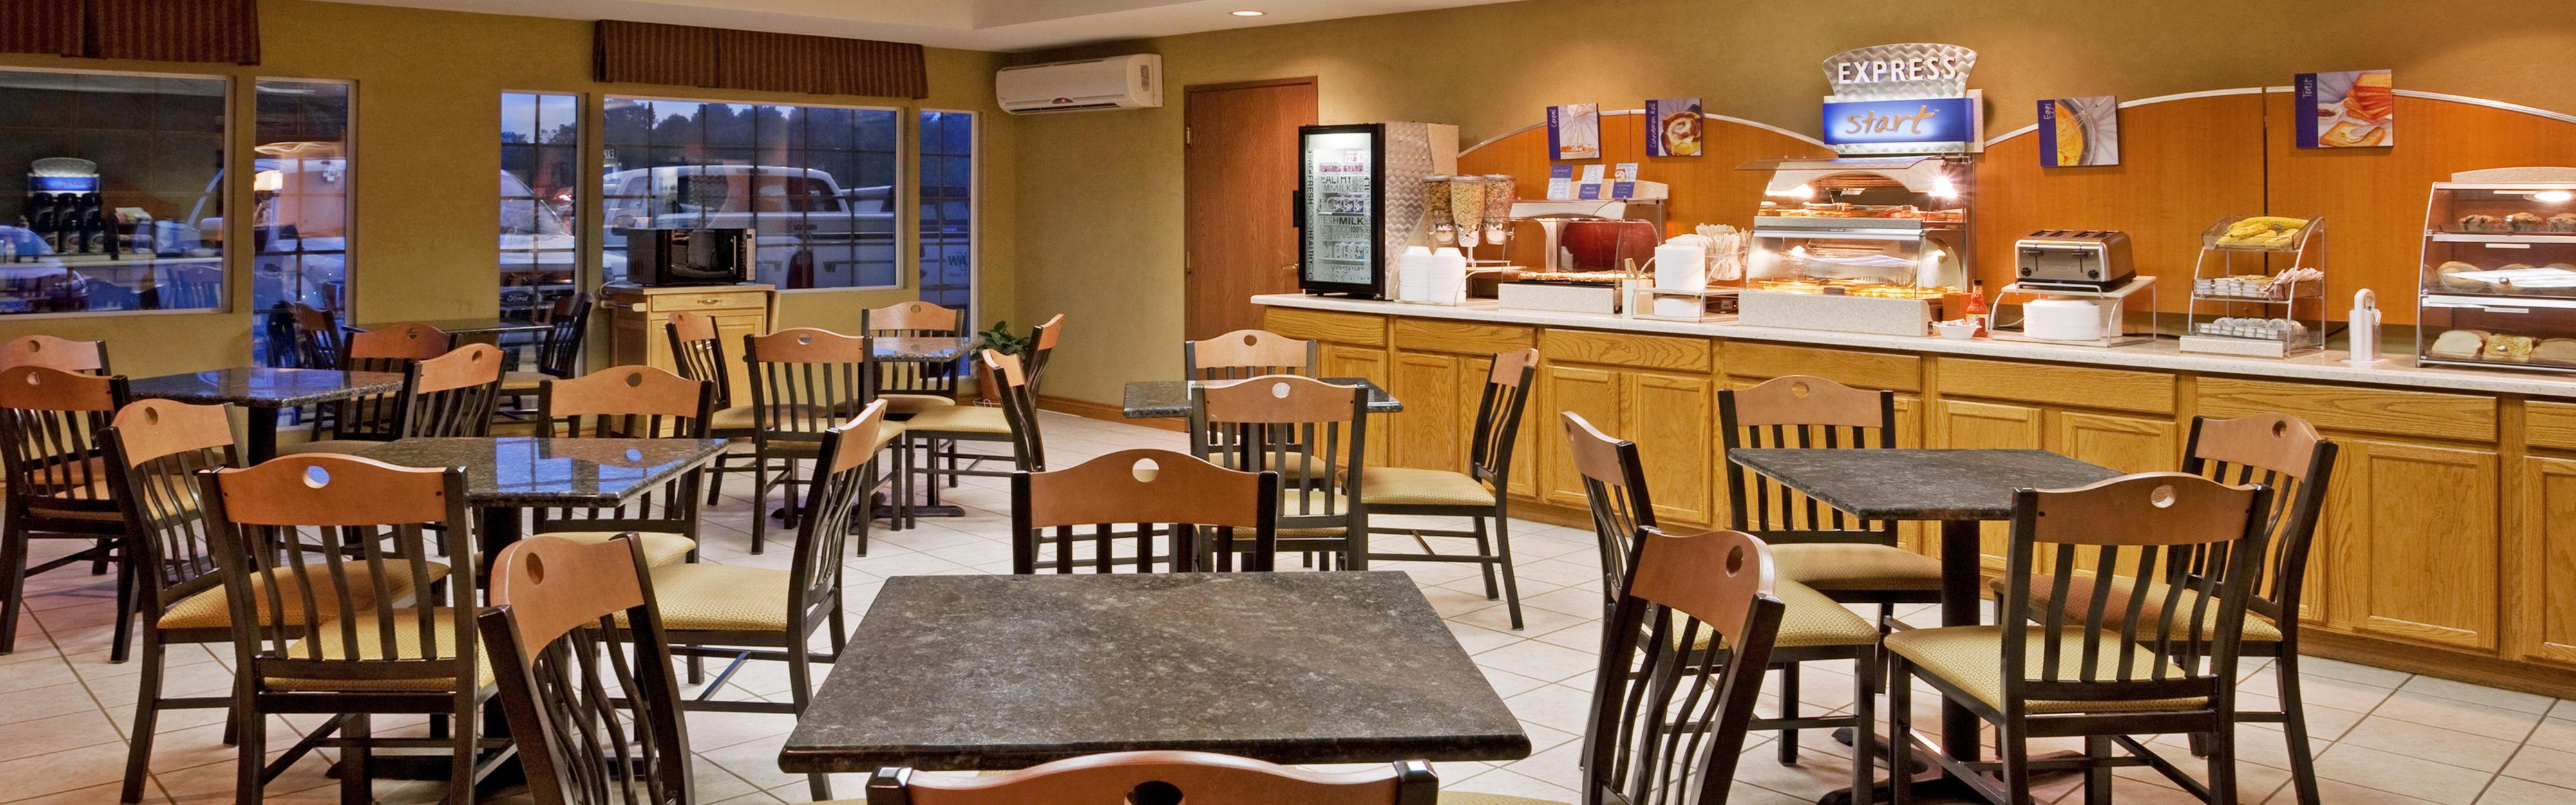 Holiday Inn Express Murrysville-Delmont image 3